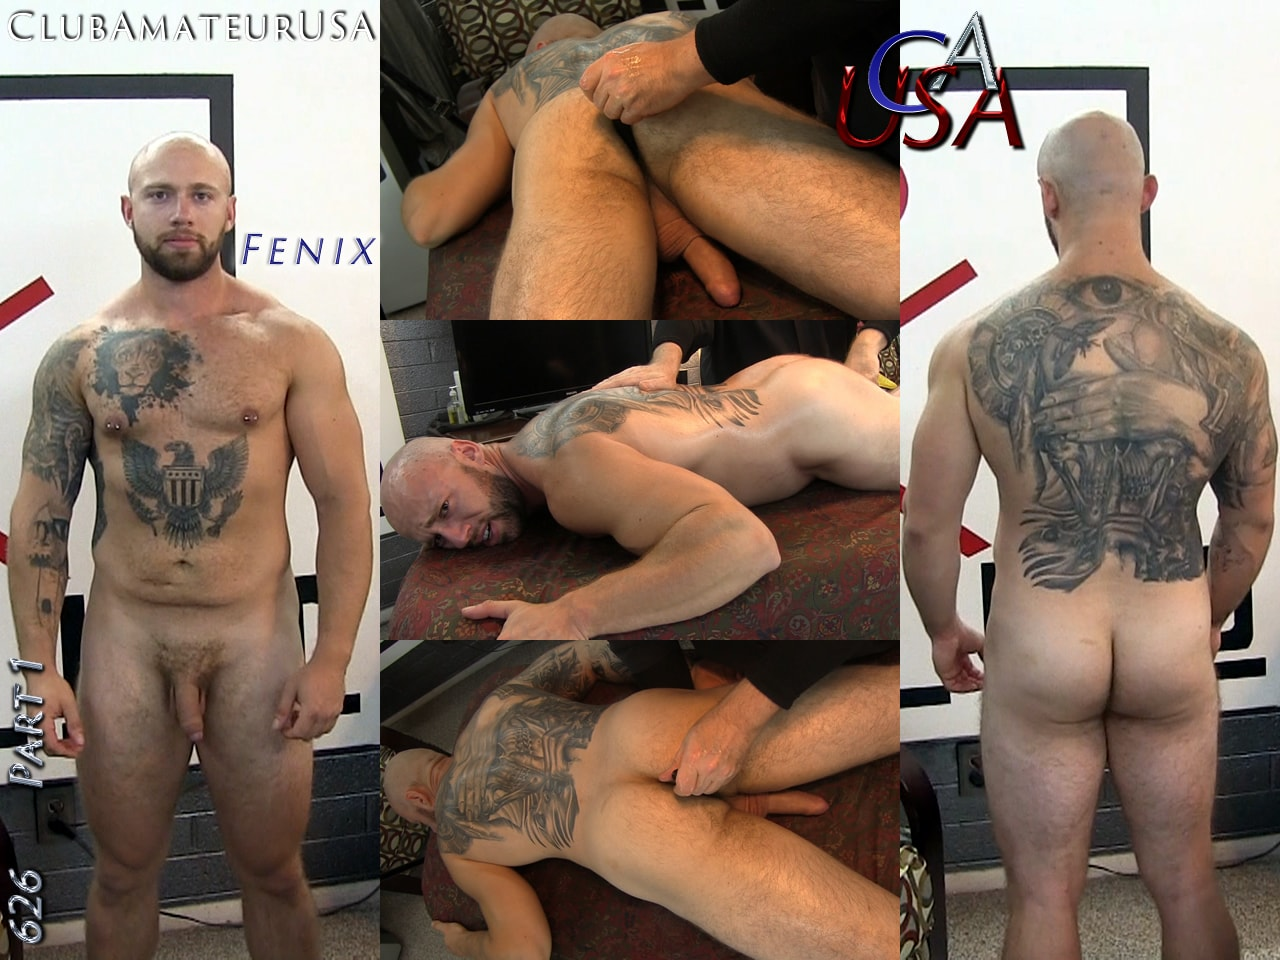 Download or Stream CAUSA 626 Fenix - Part 1 - Click Here Now